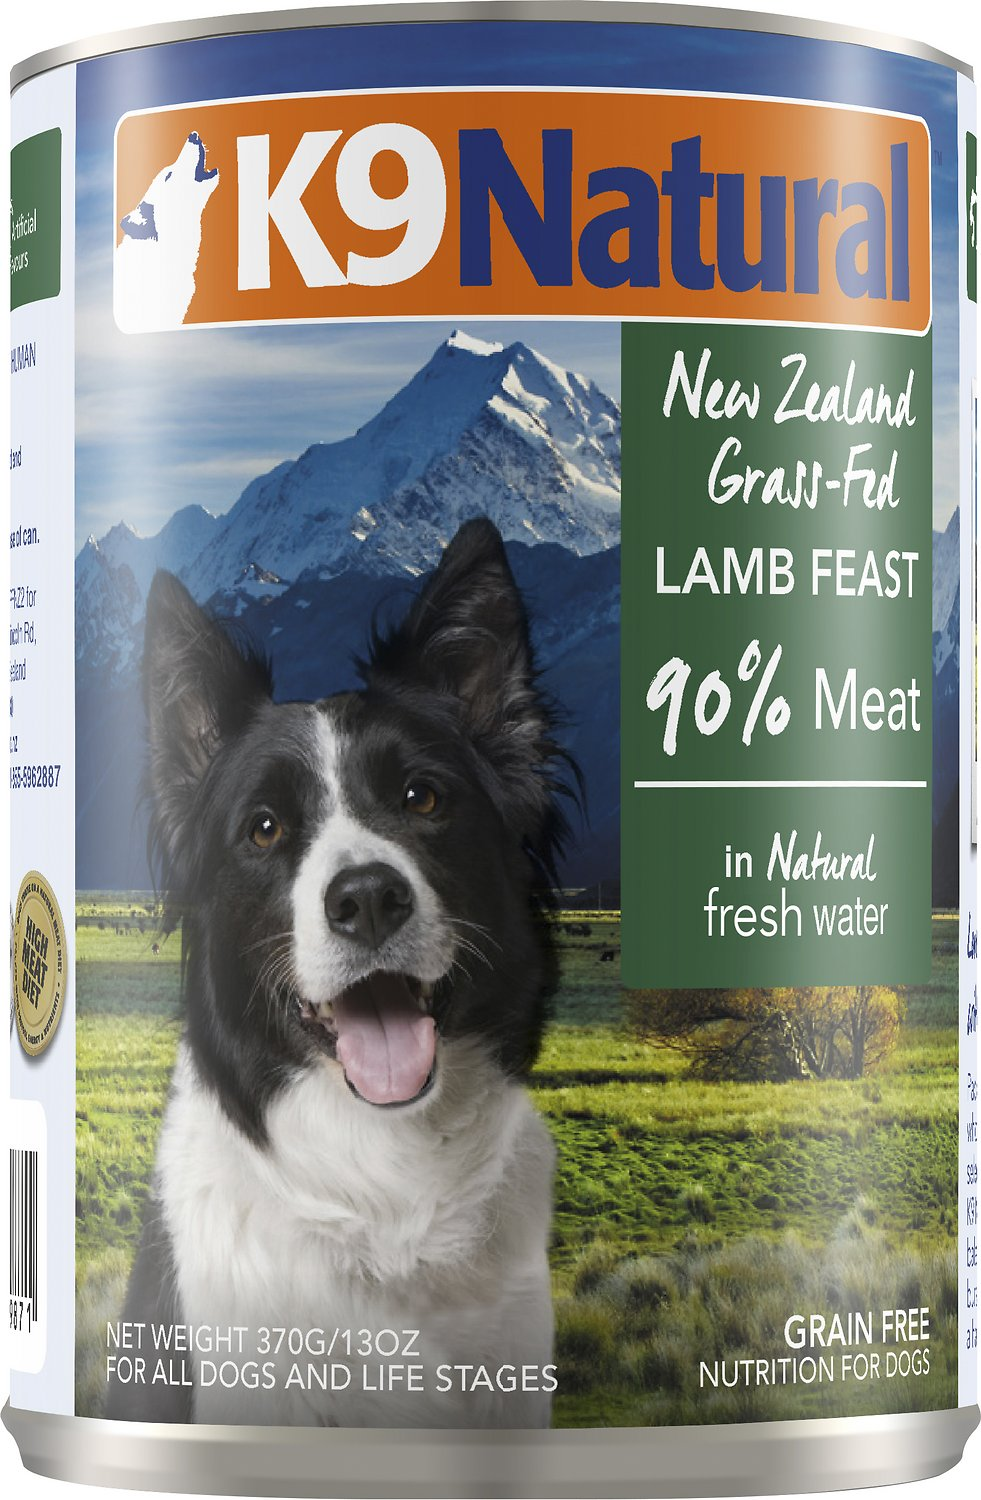 K9 Natural Lamb Feast Grain-Free Canned Dog Food, 13-oz